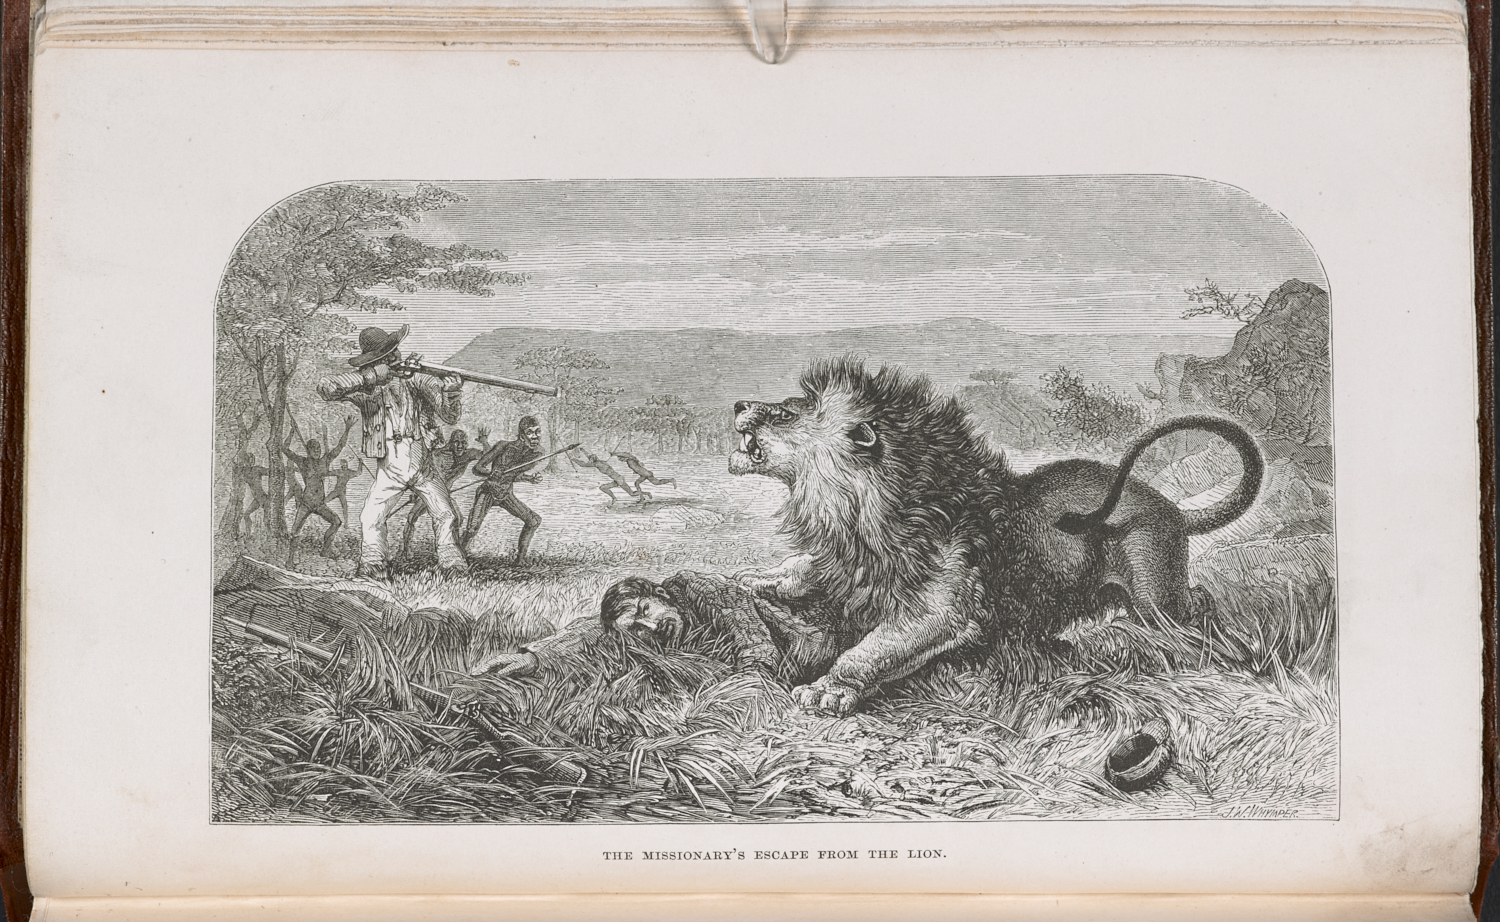 Illustration showing David Livingstone's encounter with a lion published in Missionary Travels and Researches in South Africa